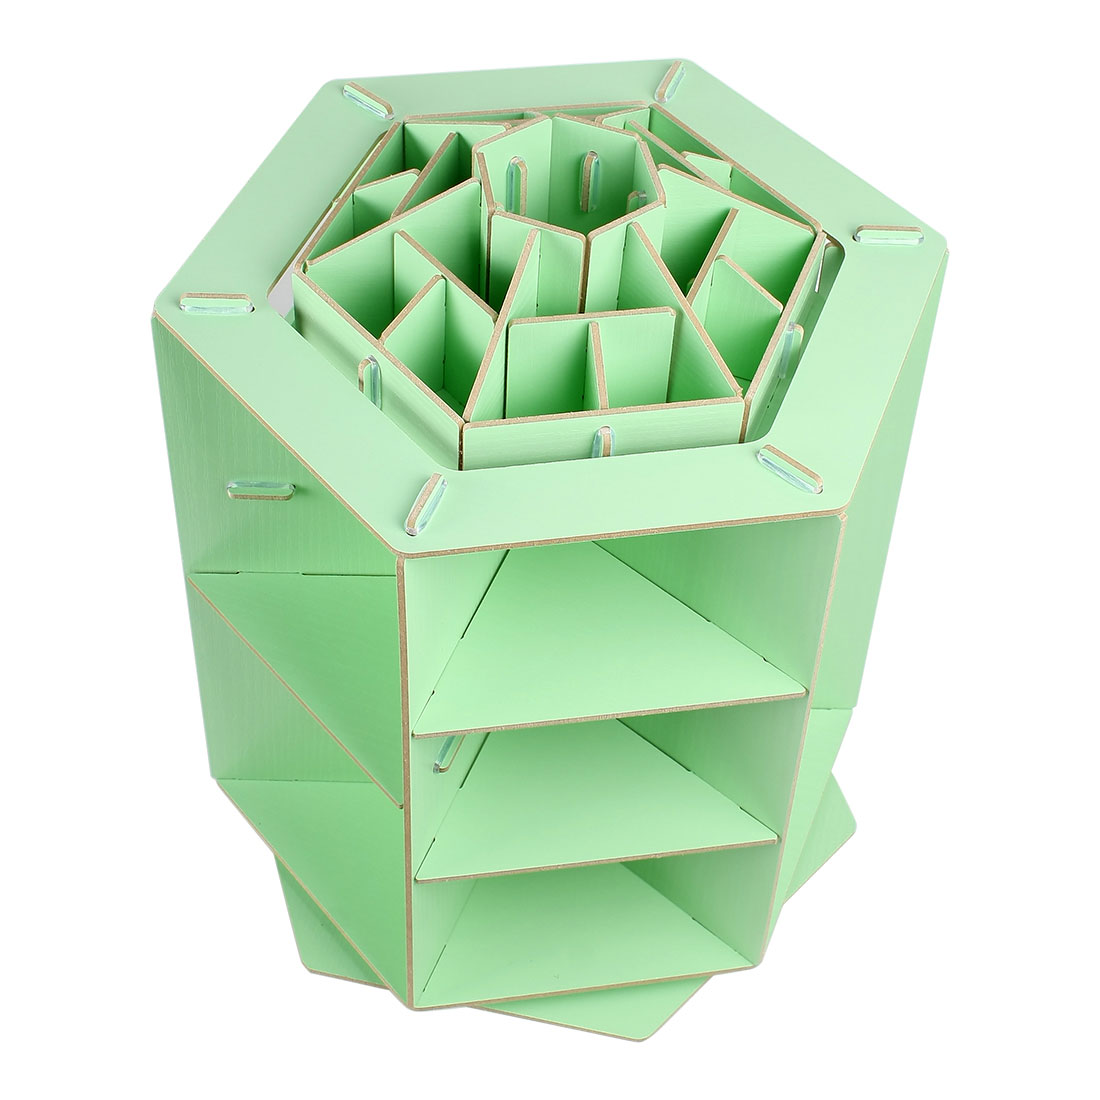 Unique Bargains Rotating Cosmetic Organizer DIY Makeup Box Holder Wooden Storage Case Green